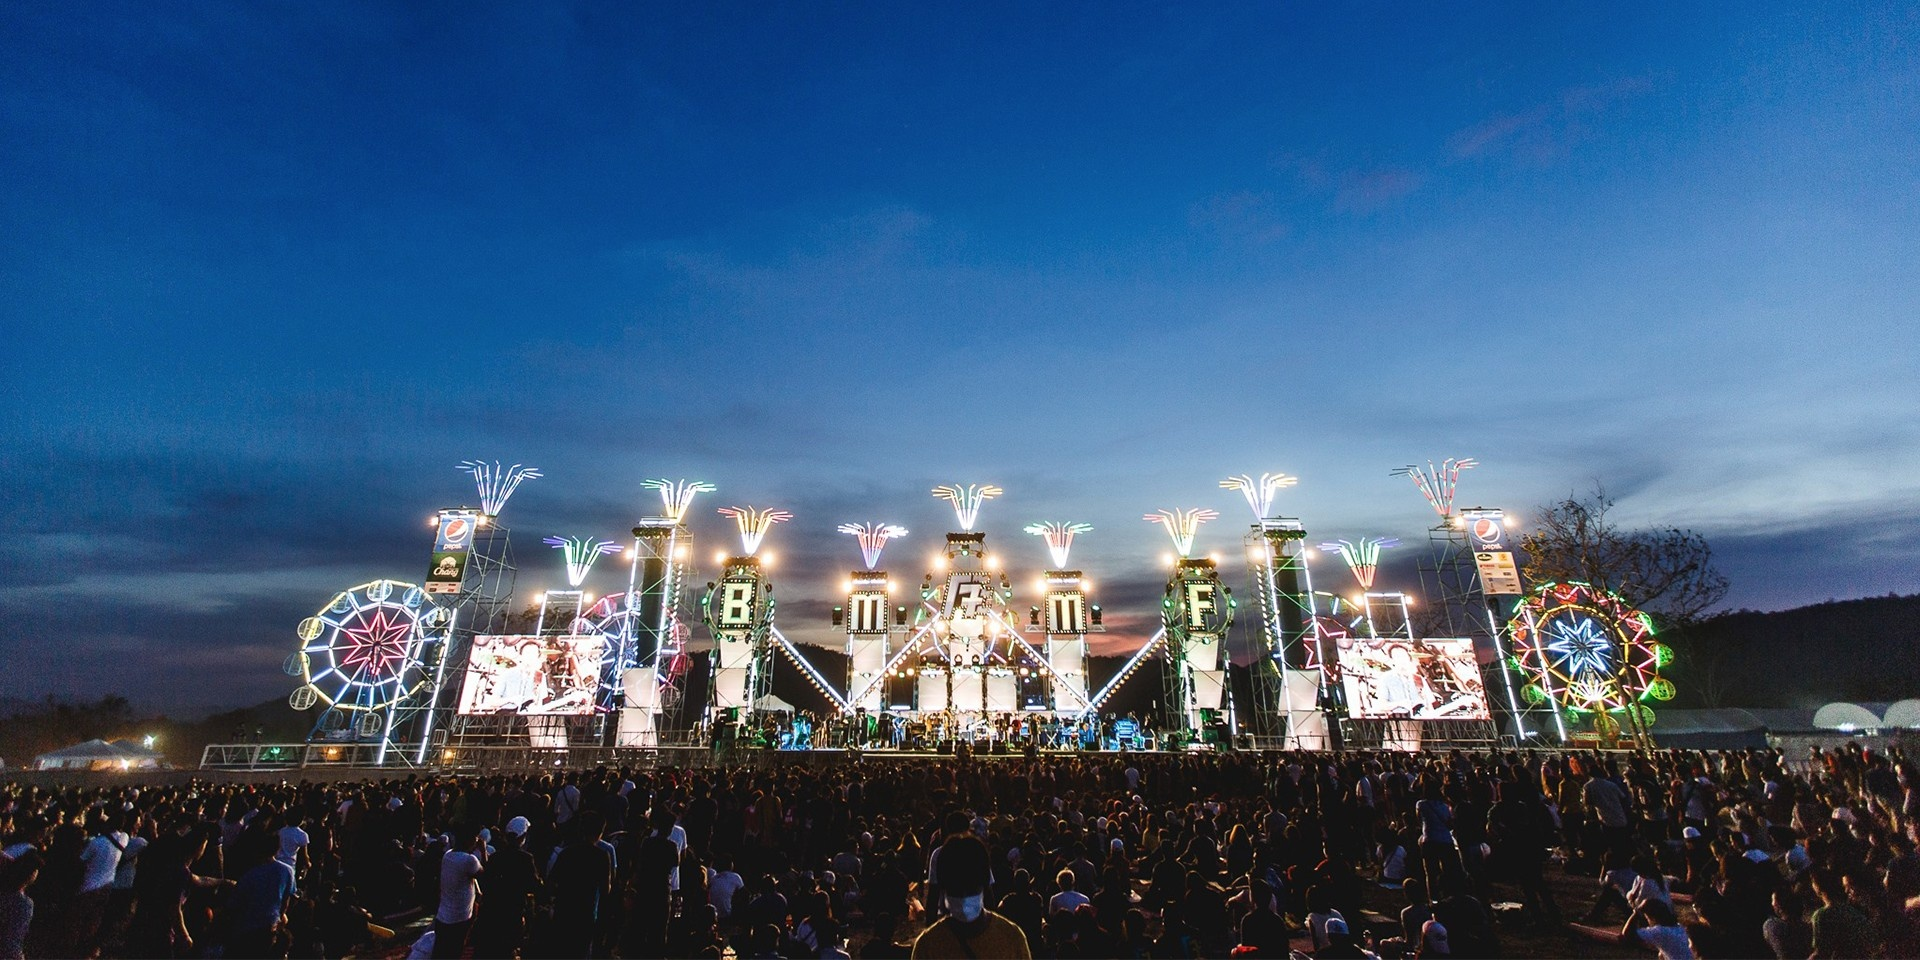 Festival Guide 2017: Here are 26 music festivals in Asia that you shouldn't miss